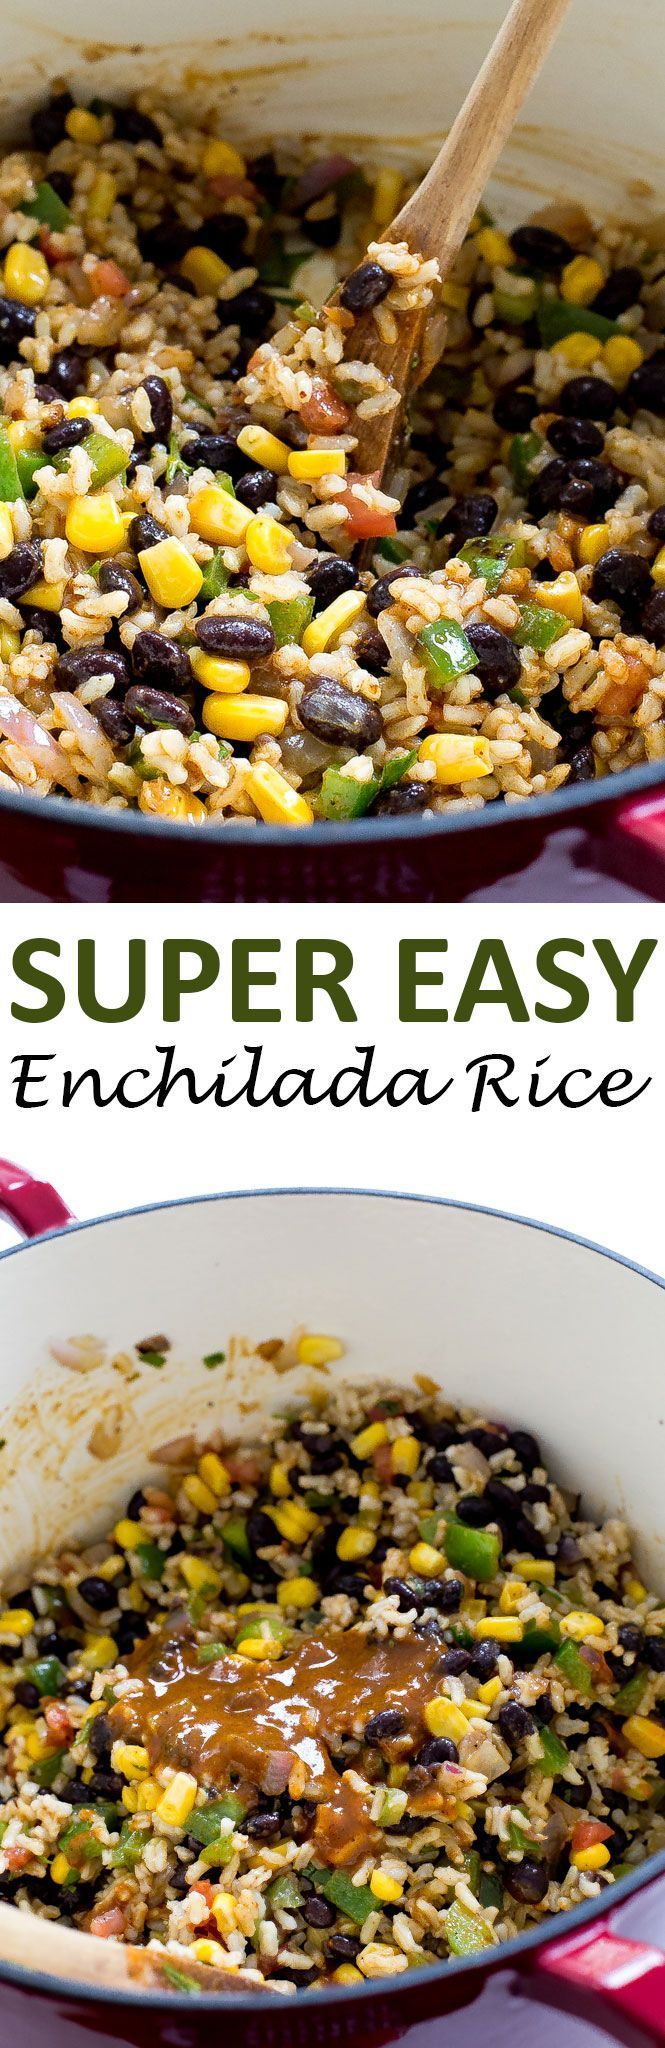 Super Easy Enchilada Rice made with homemade enchilada sauce! Loaded with…